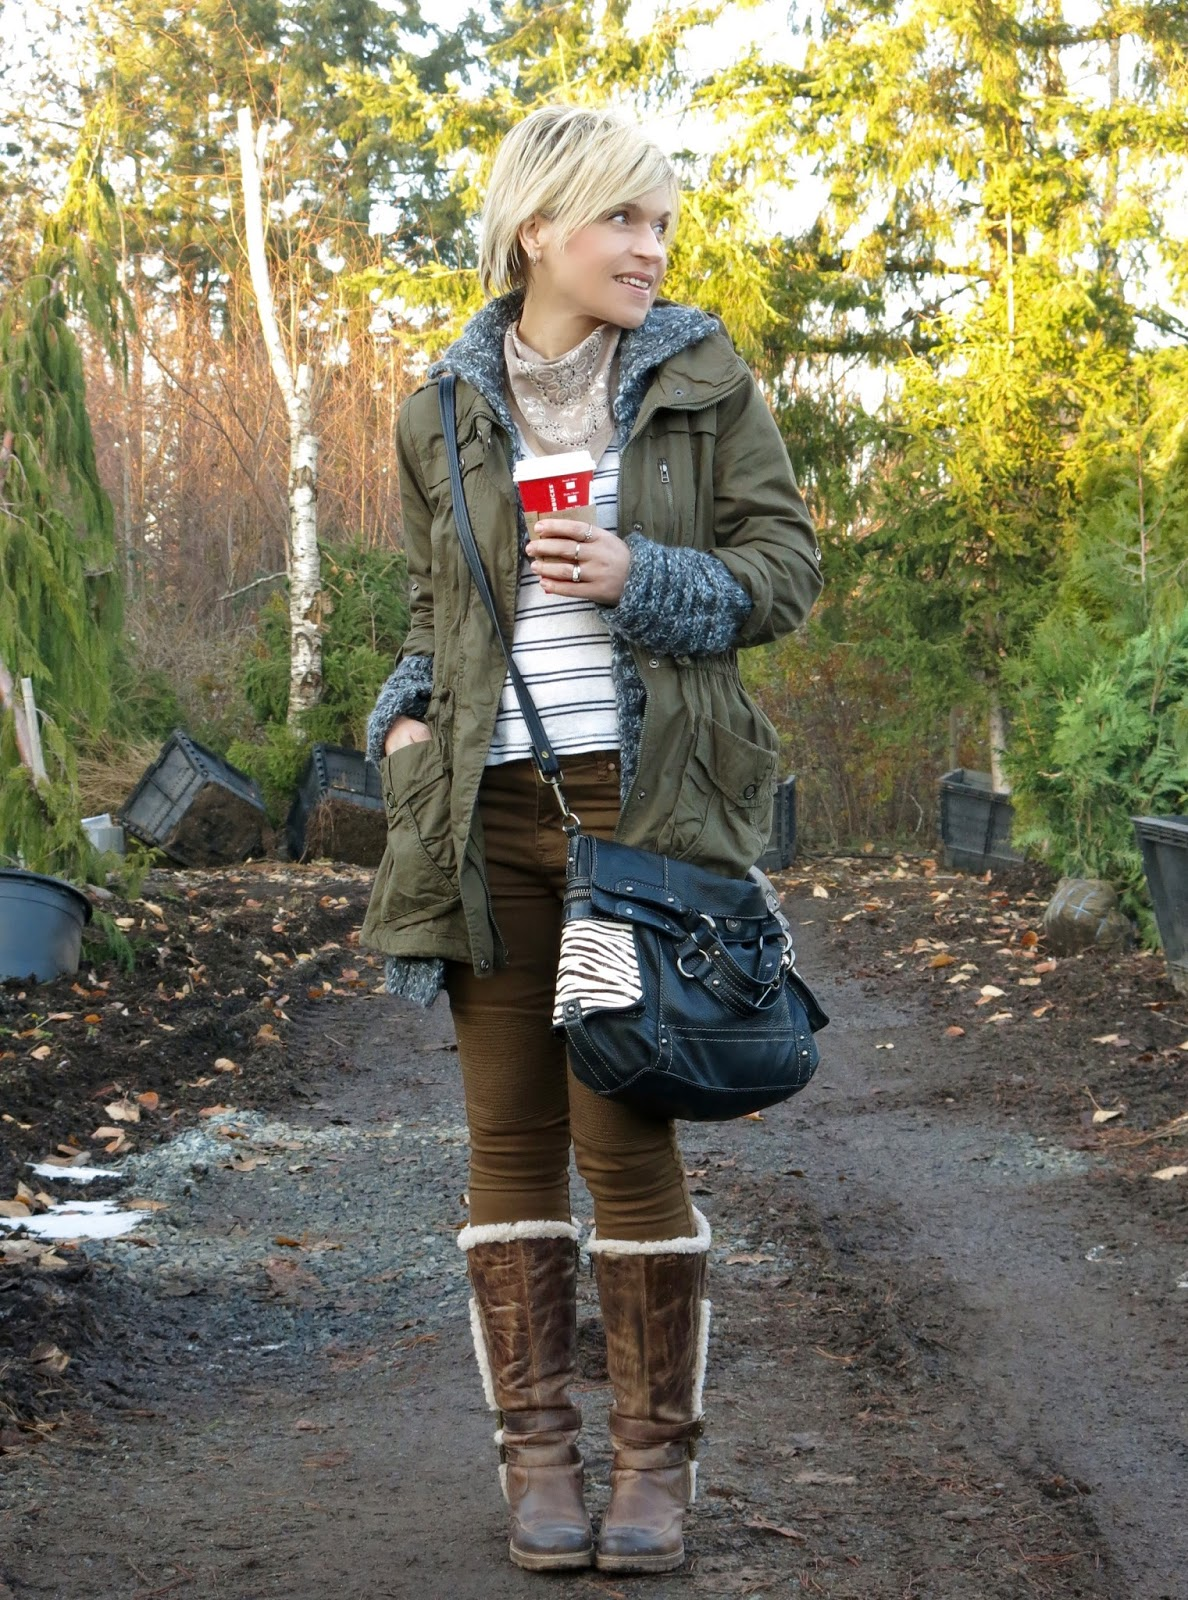 styling khaki skinnies with lug-soled boots, layered jackets, and a neckerchief